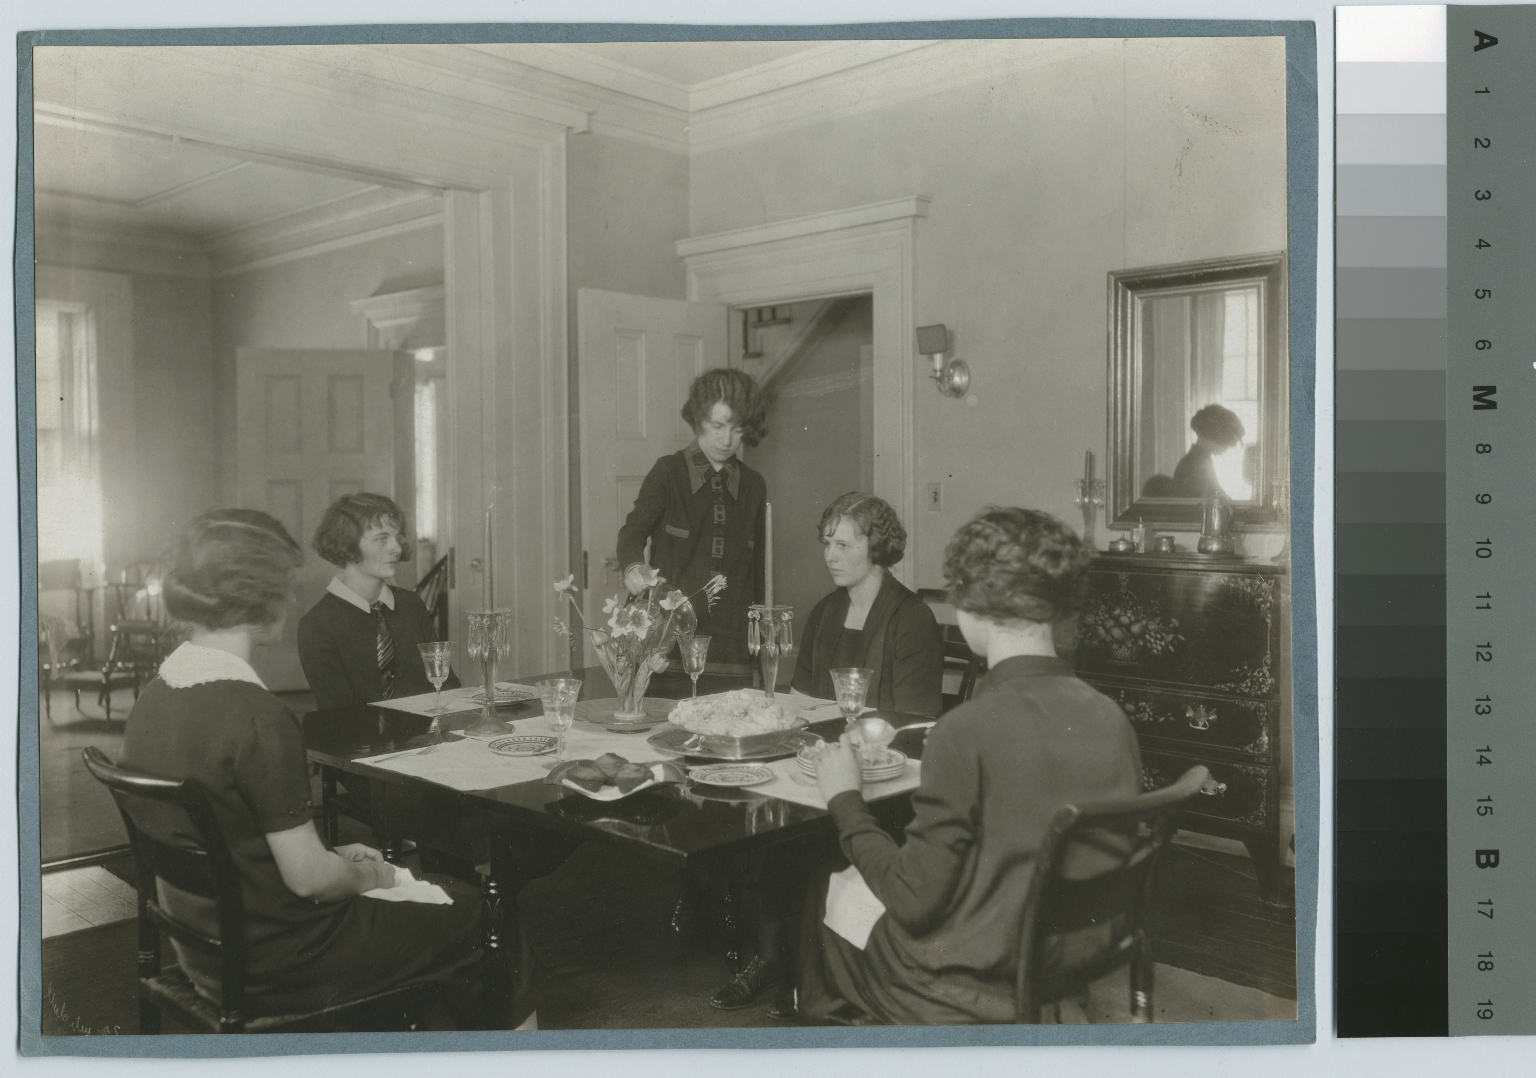 Students serving food, Practice House, Rochester Athenaeum and Mechanics Institute